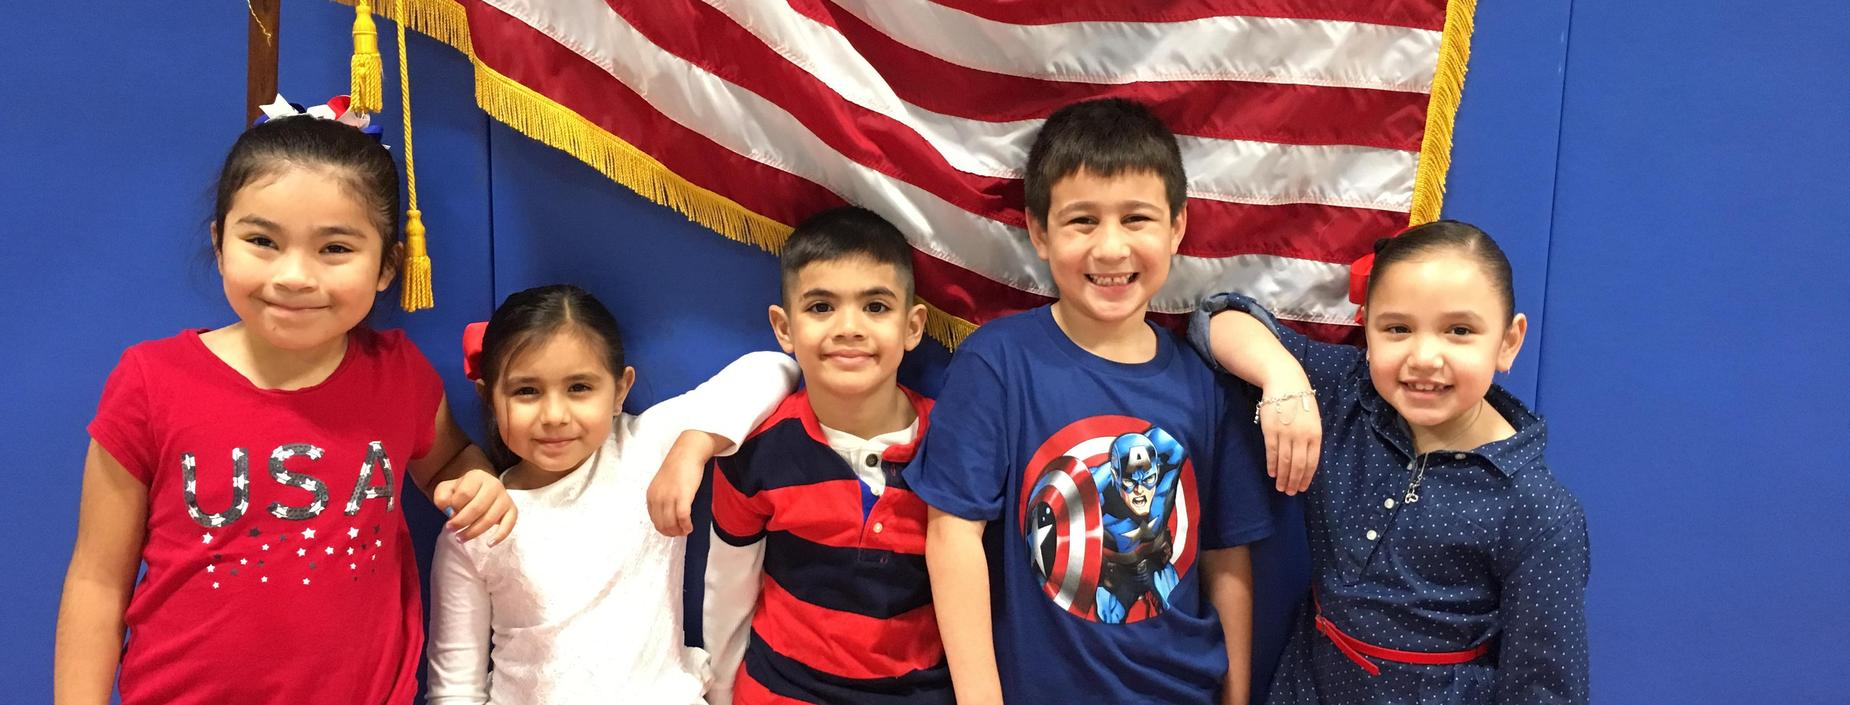 Students celebrate Veterans Day